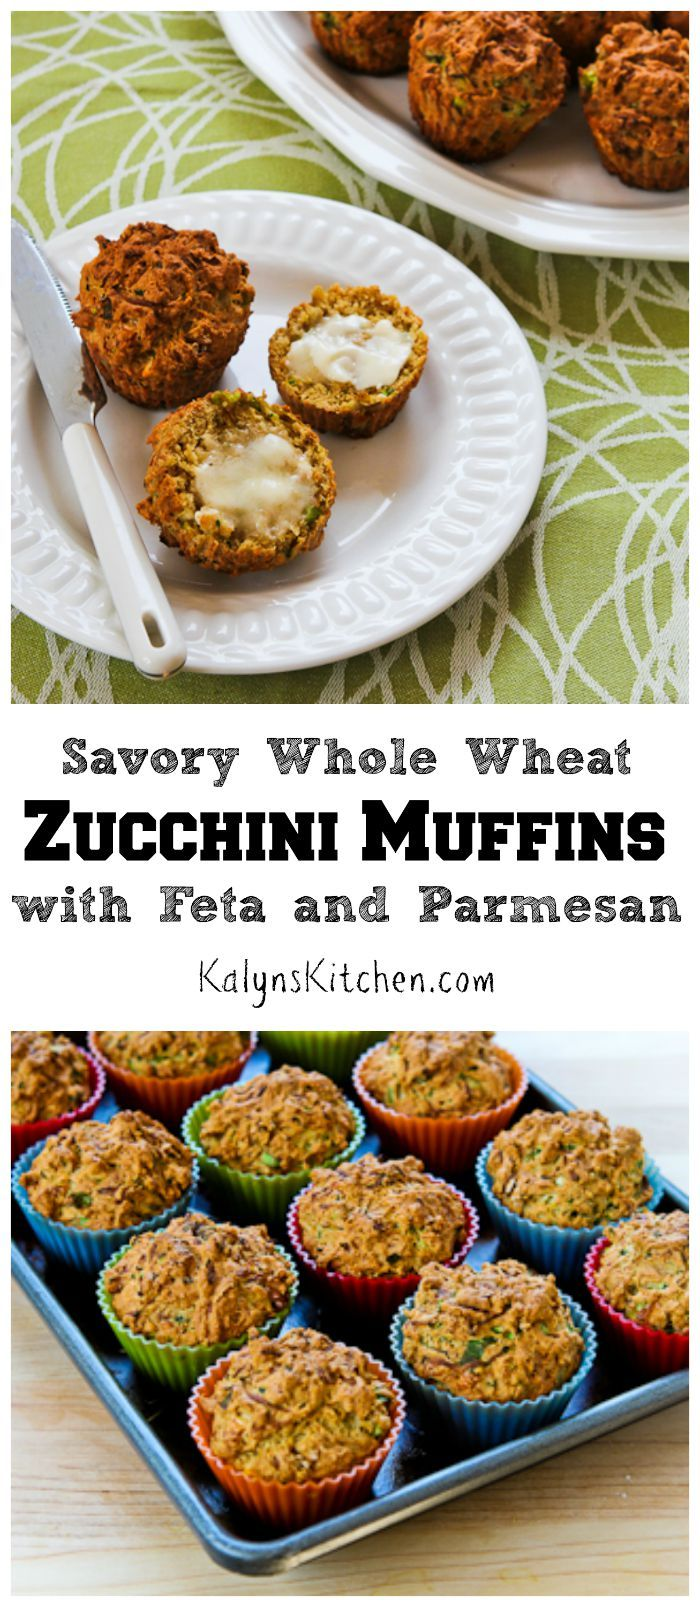 zucchini muffins feta and zucchini on pinterest